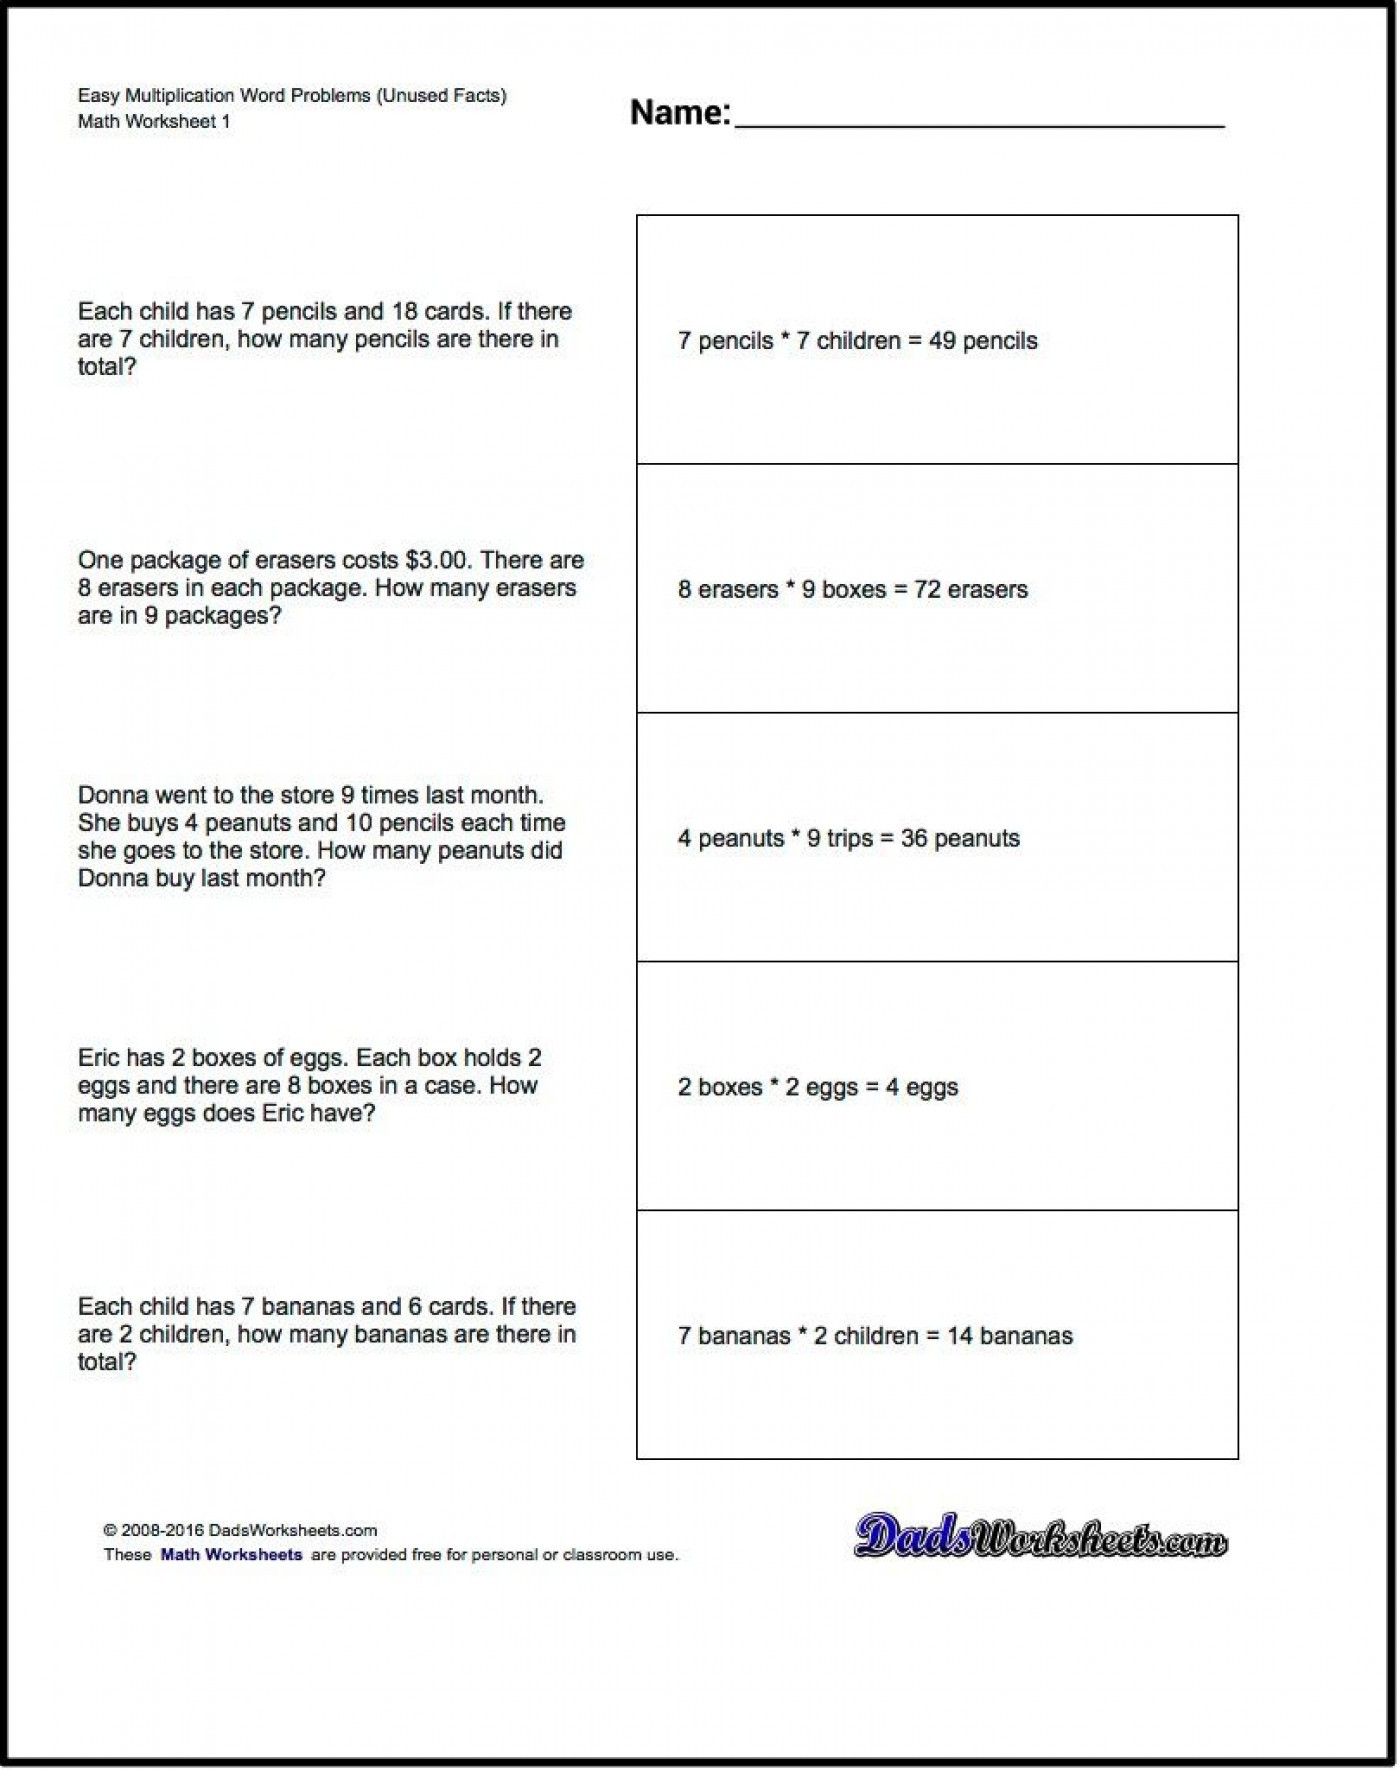 hight resolution of 4 Free Math Worksheets Second Grade 2 Addition Add In Columns Missing  Addend - apocalomegaproductions.com